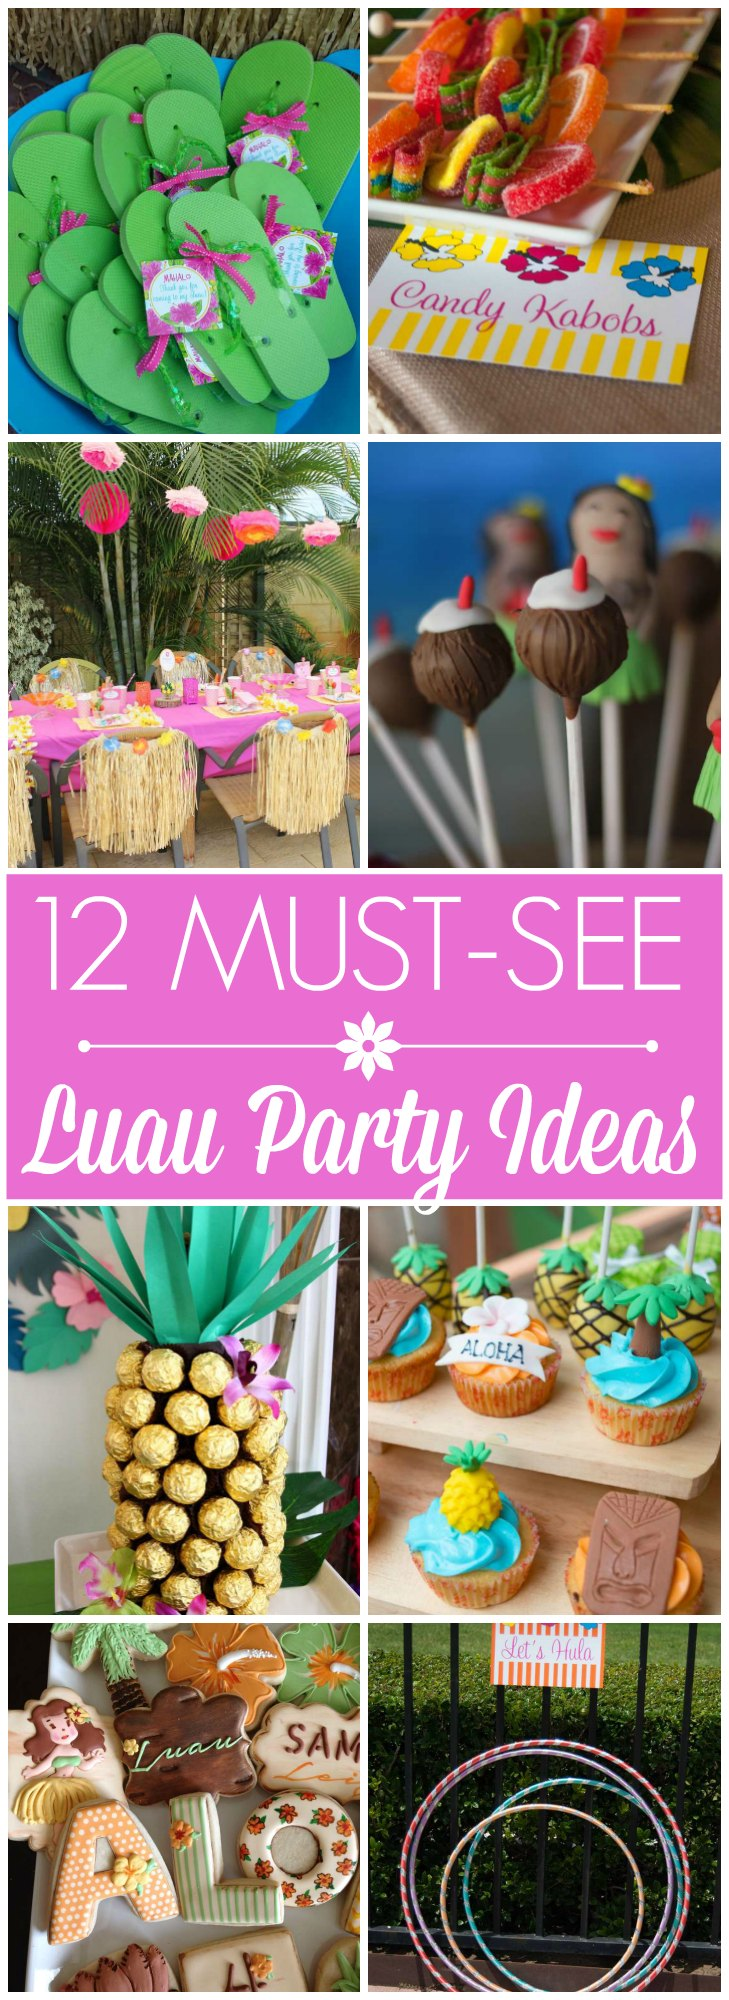 photograph regarding Printable Luau Party Games identify Comprise Entertaining within the Sunshine with All those 12 Extraordinary Luau Social gathering Options